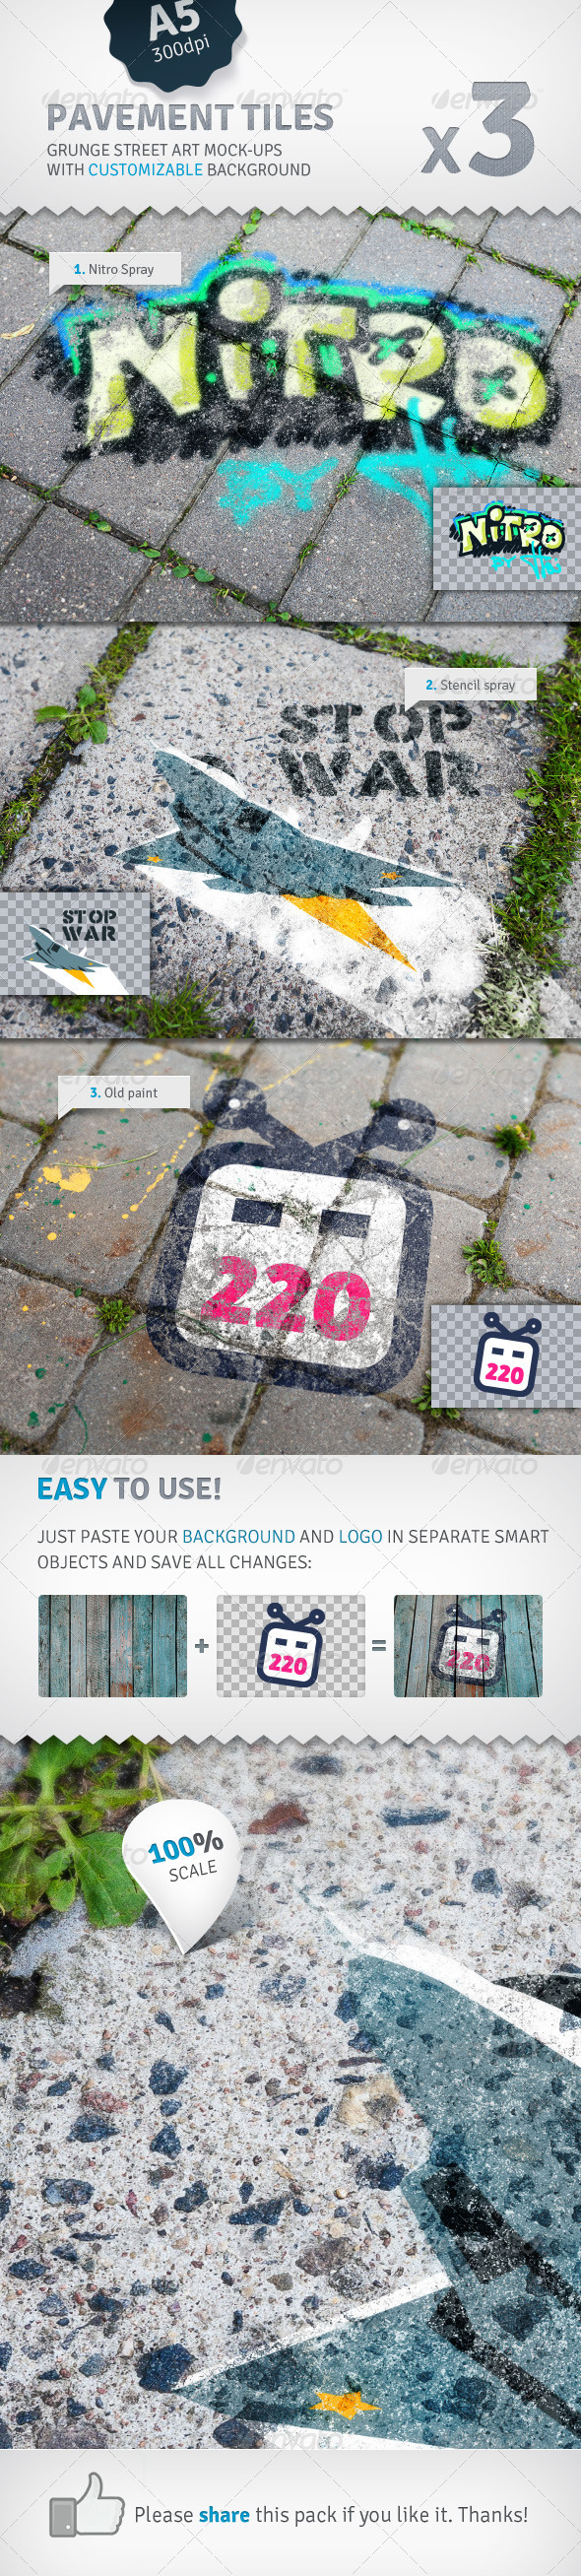 Pavement Tiles - 3 Graffiti Street Art Mockups - Miscellaneous Displays